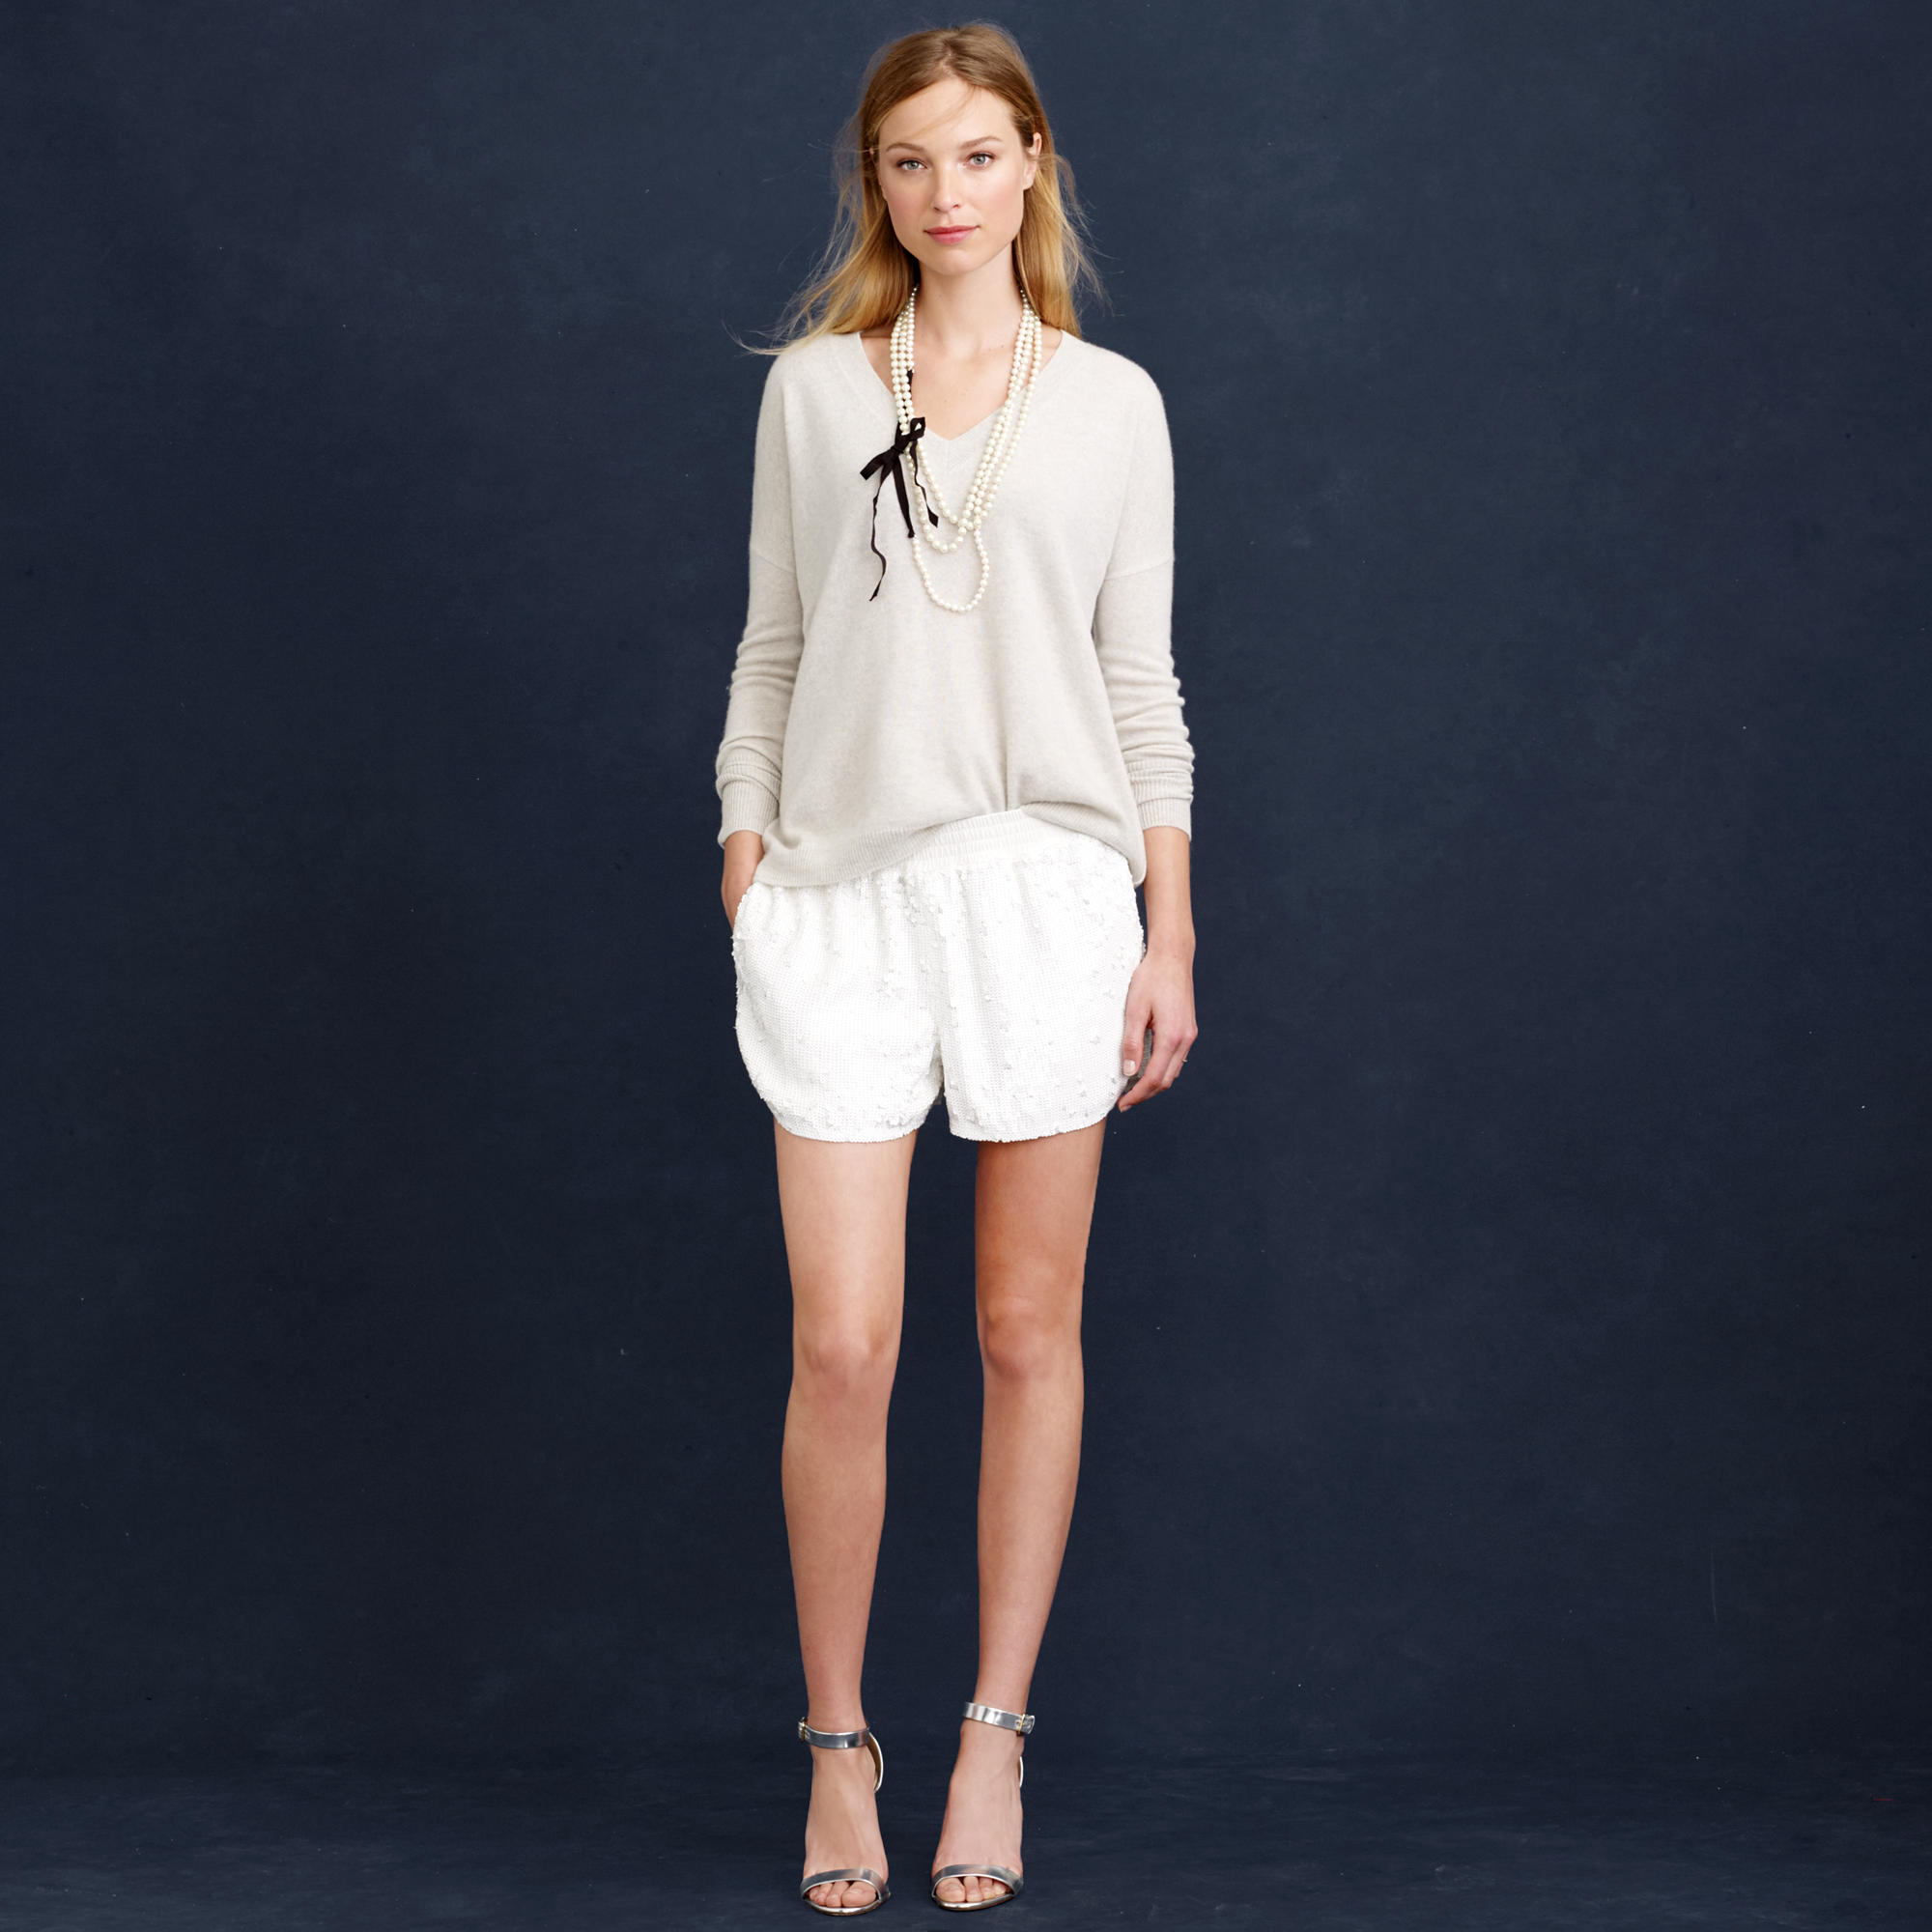 6080e551aab0 The bride wore... shorts  - The Wedding Planners Blog